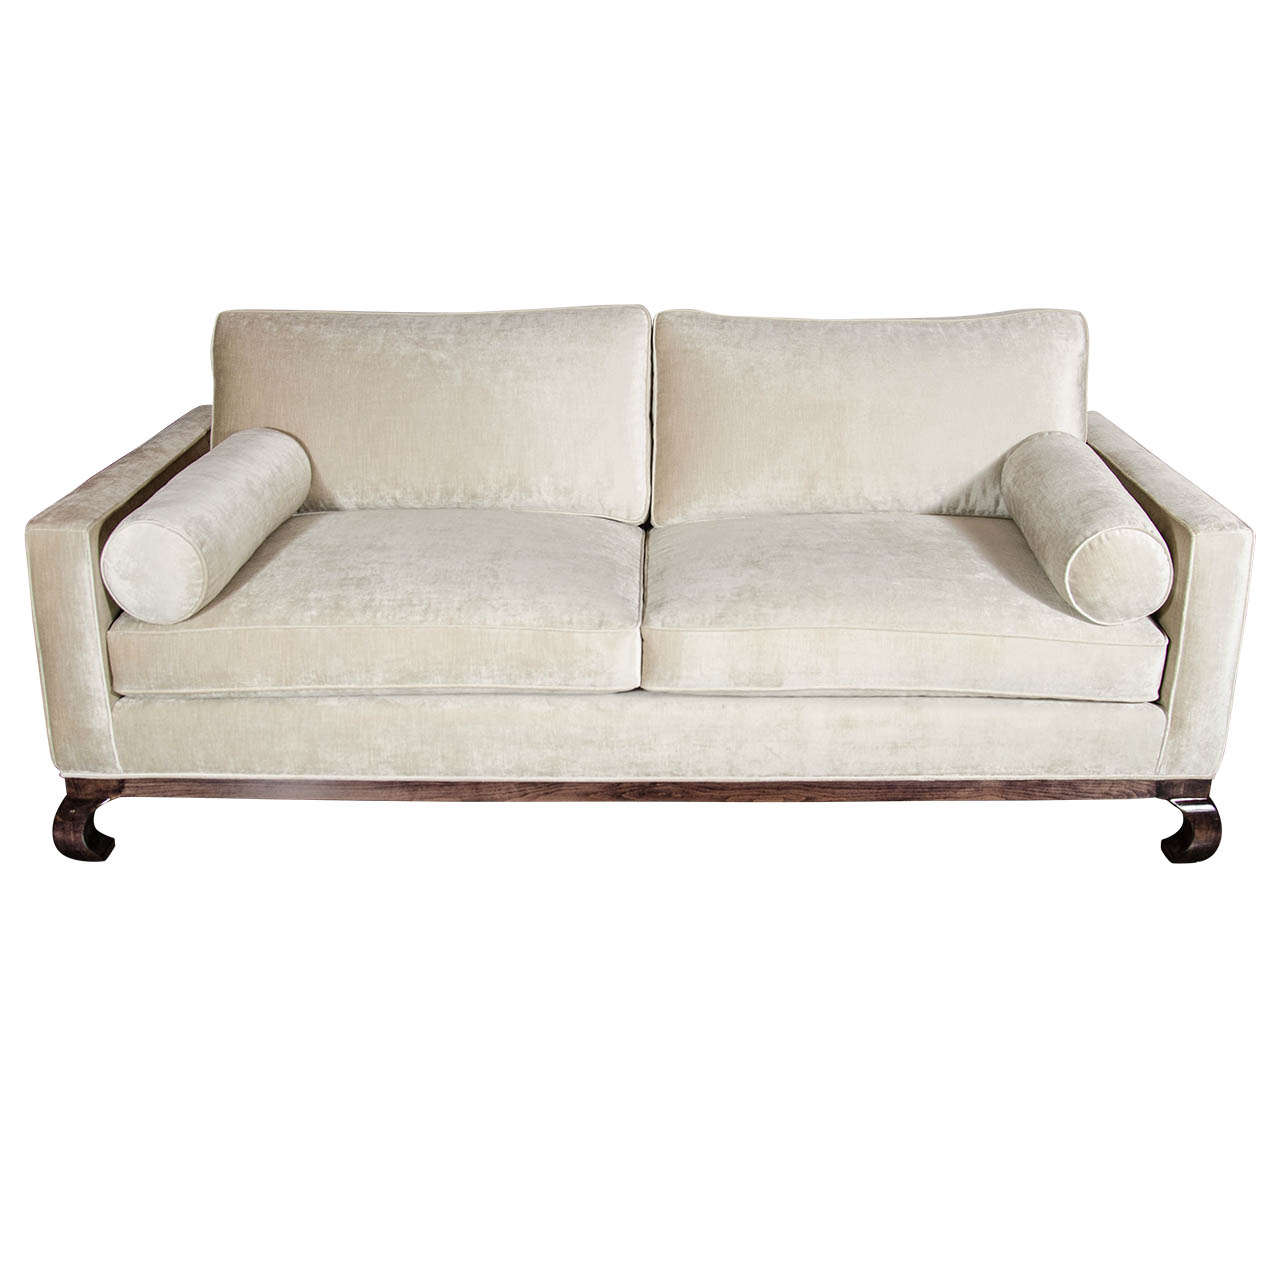 Asian Sofa Asian Sofas Couches Houzz TheSofa : X from thesofa.droogkast.com size 1280 x 1280 jpeg 72kB